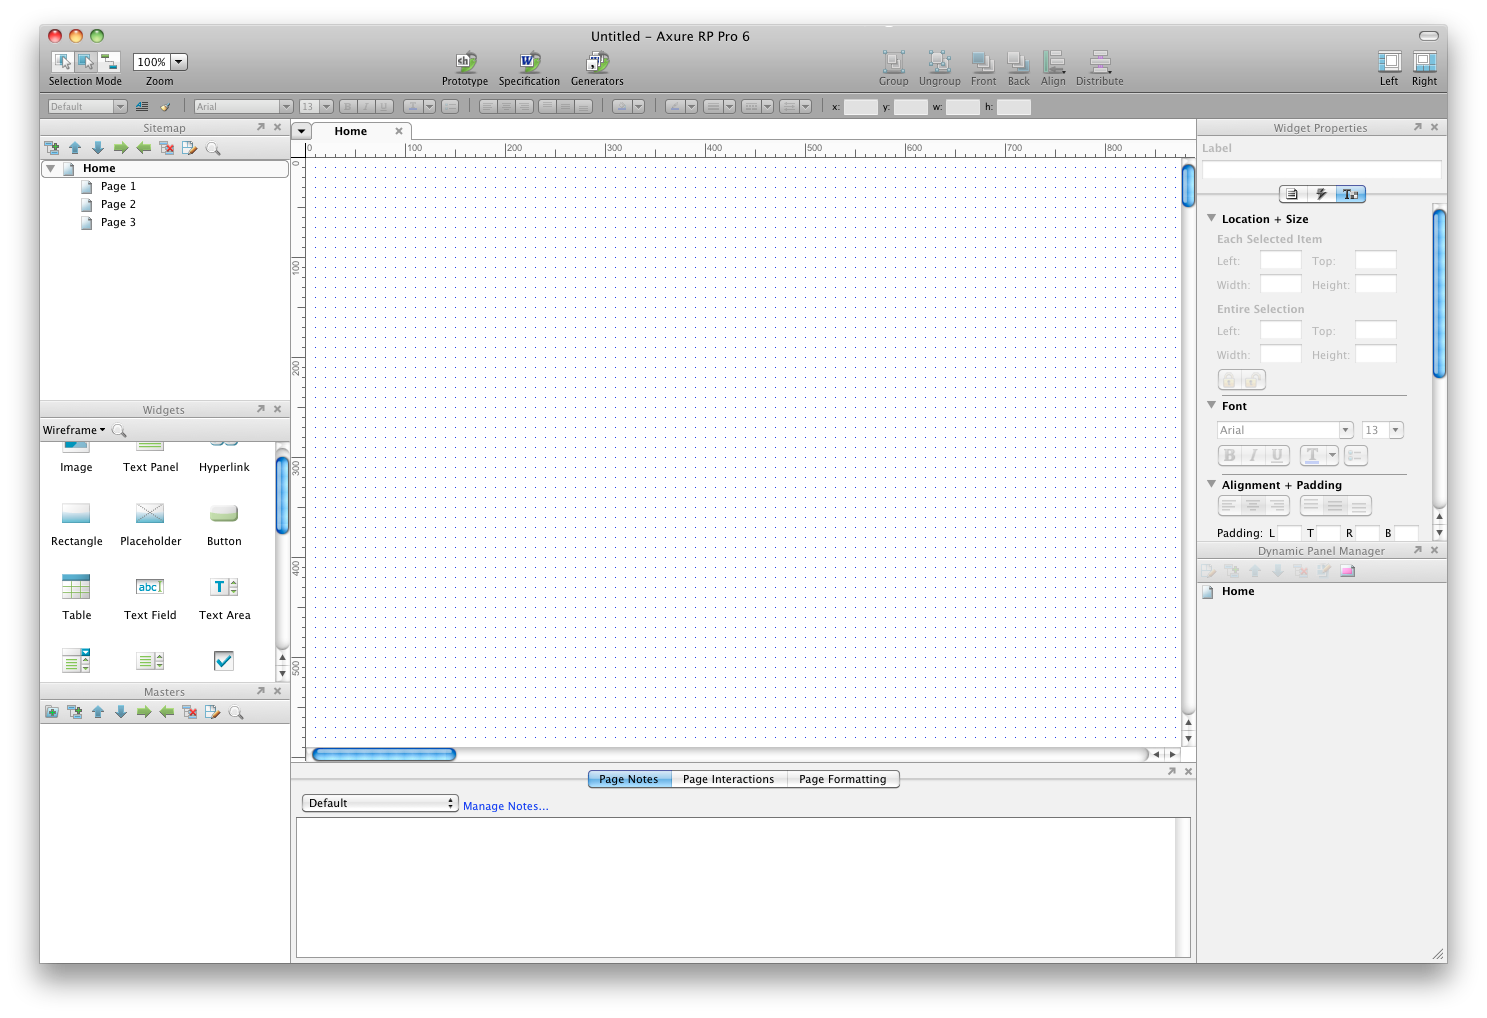 axure for mac os x